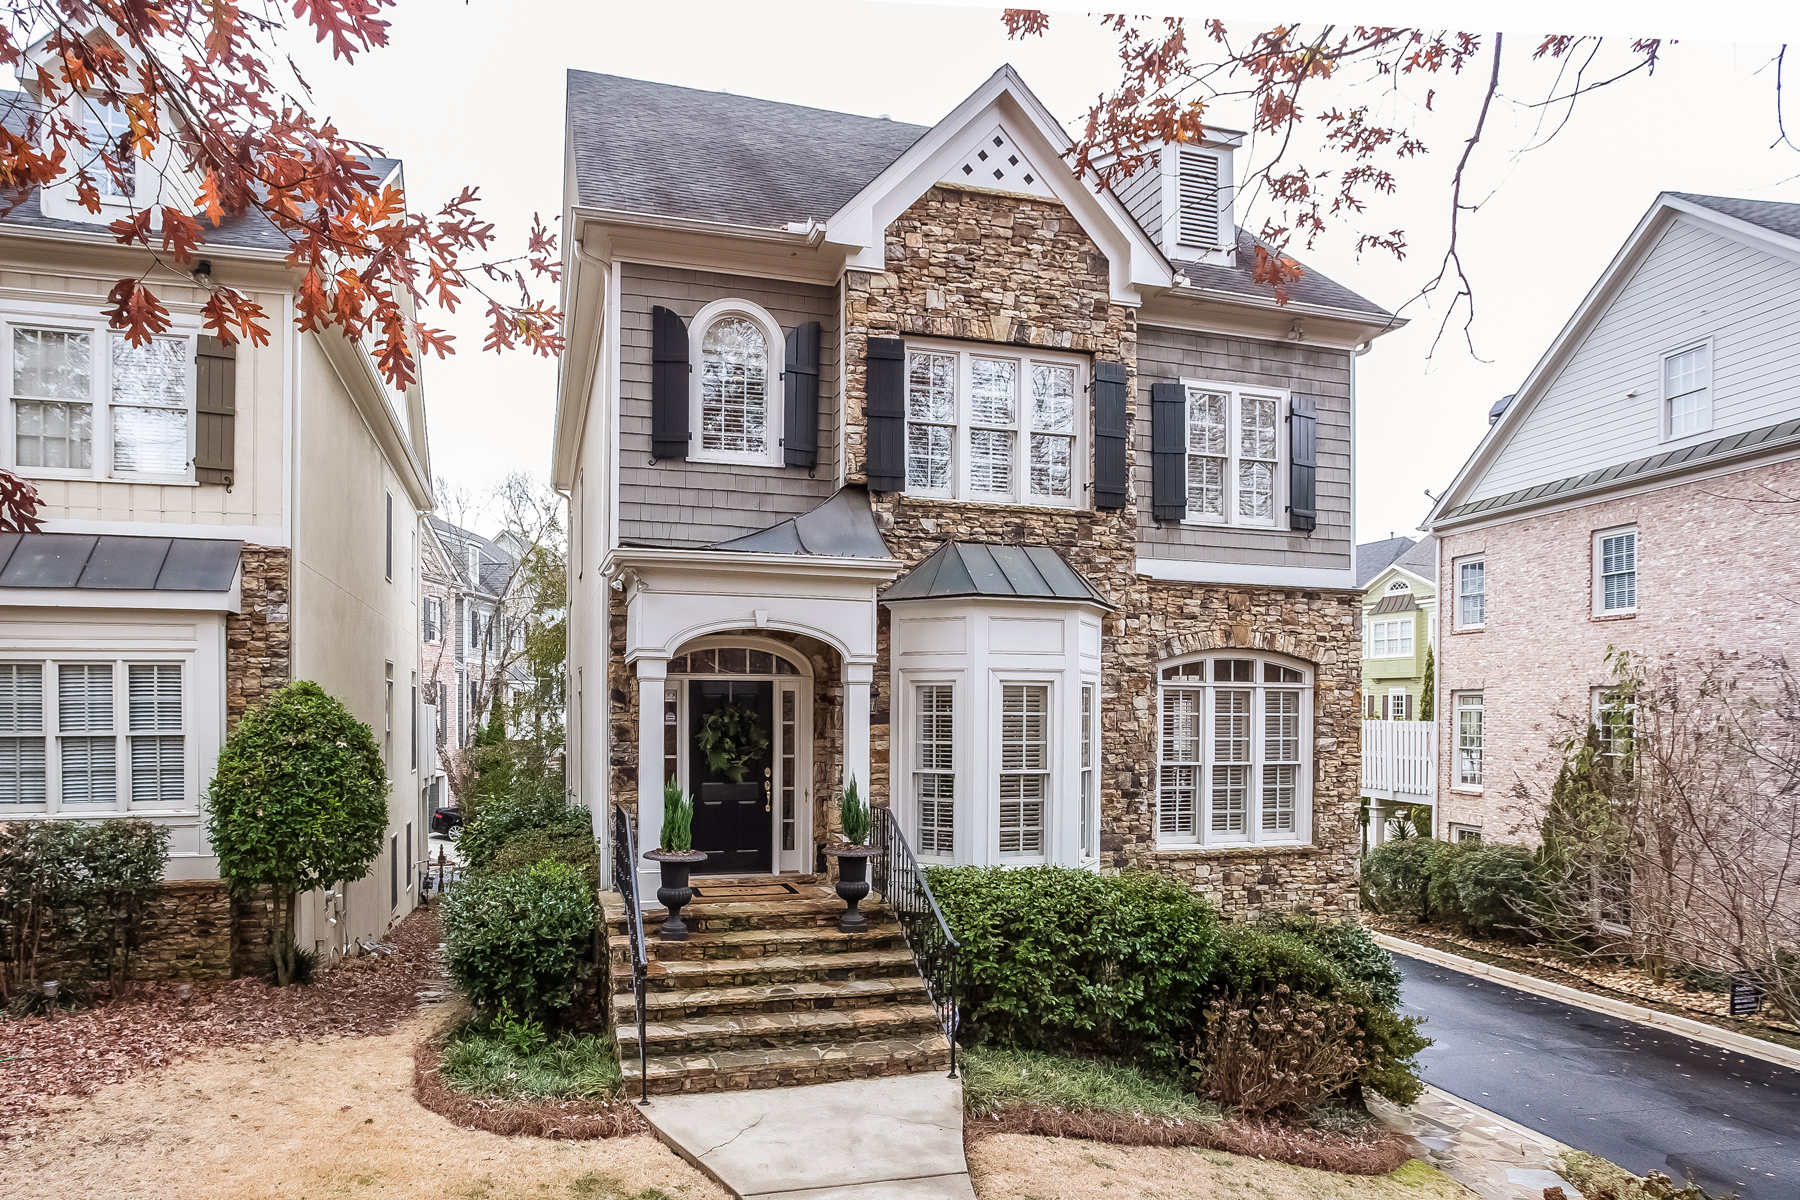 Single Family Home for Sale at Sophisticated Move In Ready Four Story City Home 1124 Valley Overlook Drive NE Atlanta, Georgia, 30324 United States